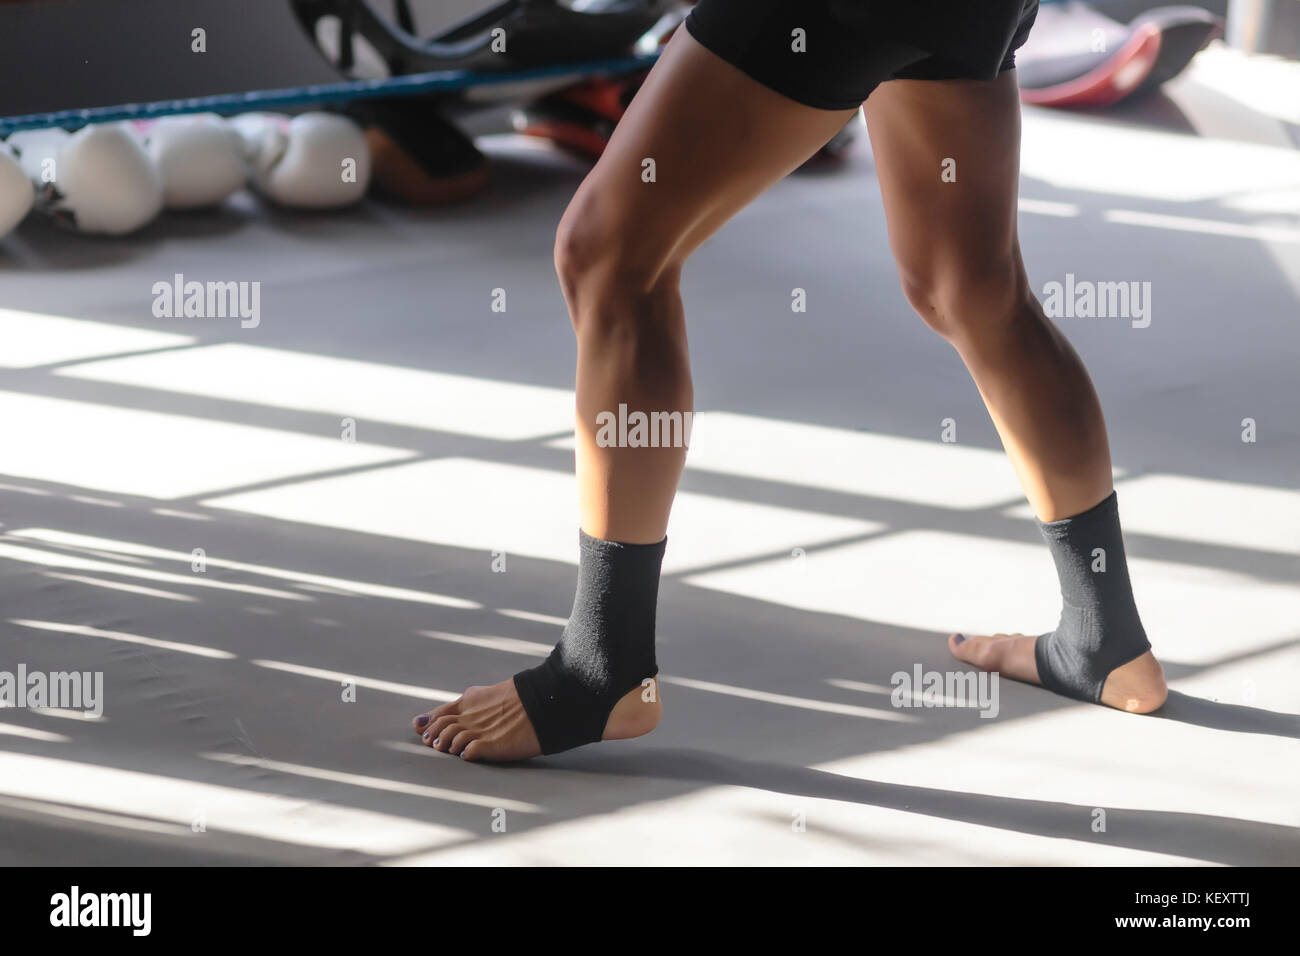 Photograph of young woman's legs in kickboxing stance, Seminyak, Bali, Indonesia - Stock Image